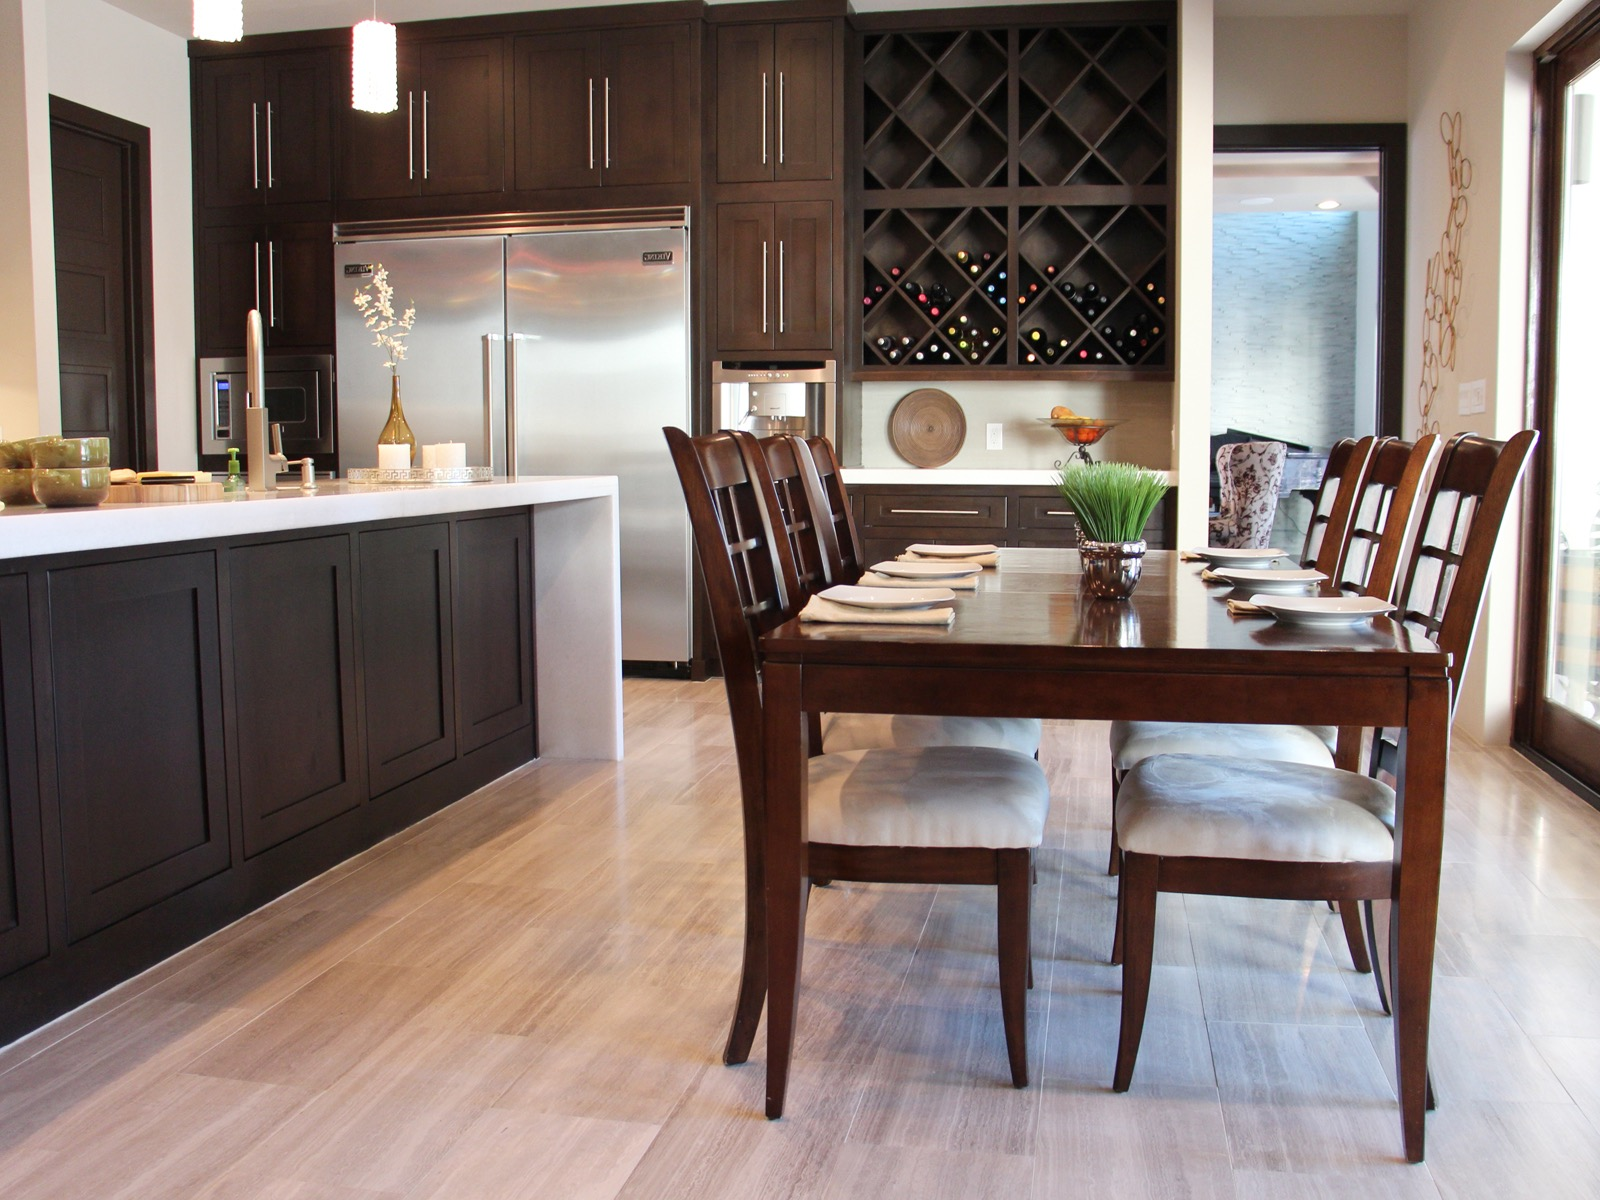 Contemporary Eat In Kitchen With Dark Wood Furniture (View 12 of 42)